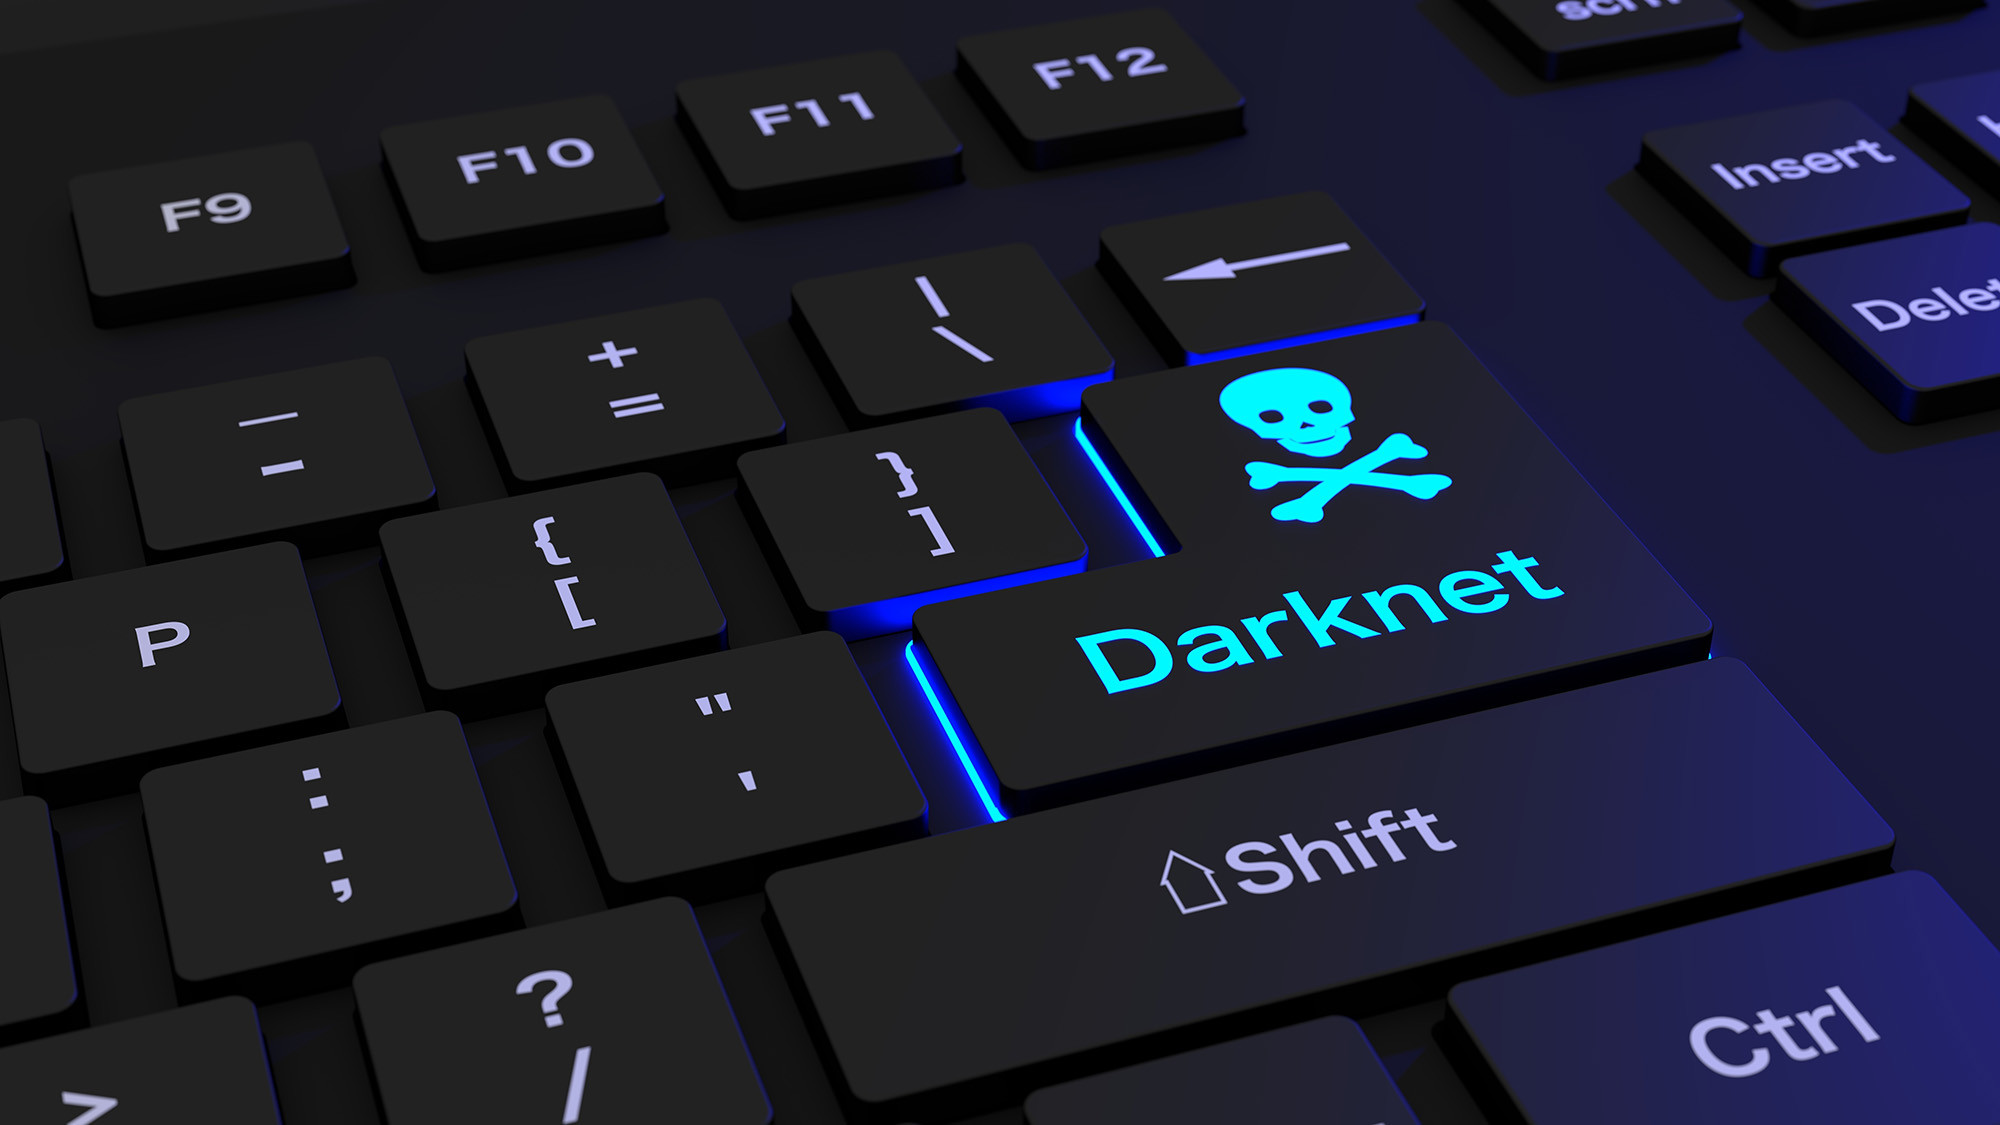 Russia: Darknet Marketplace Plans $146M ICO for Global Expansion